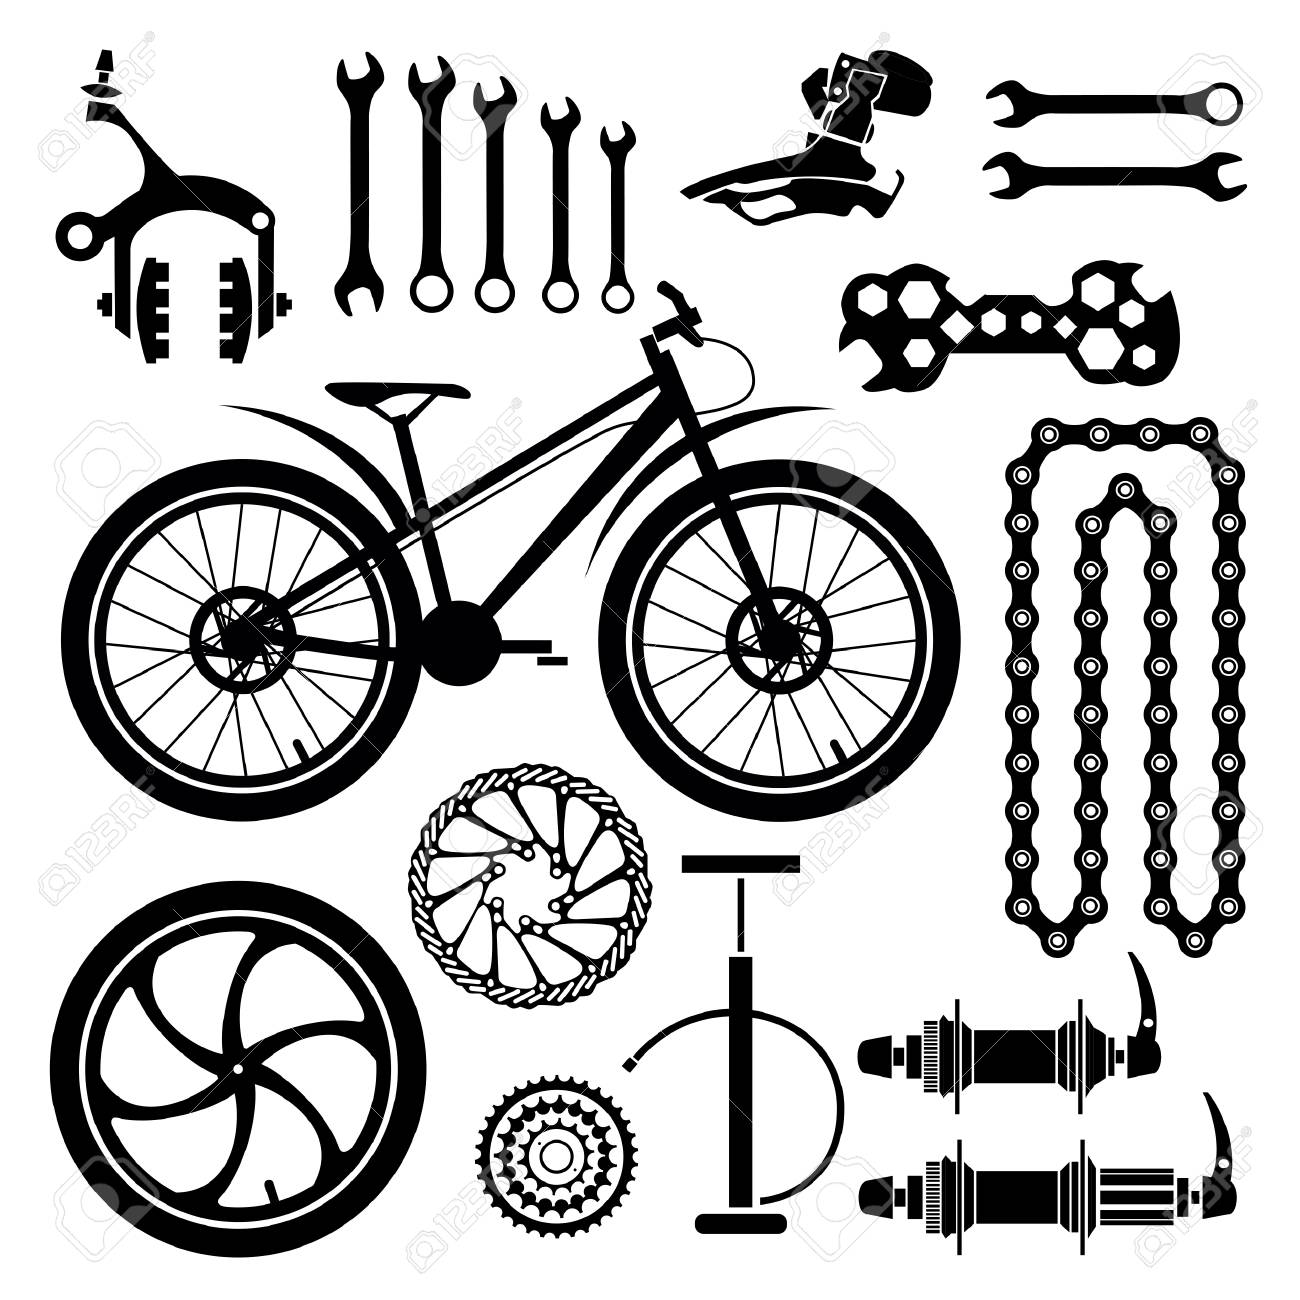 Bicycle Parts Vector Set Royalty Free Cliparts Vectors And Stock